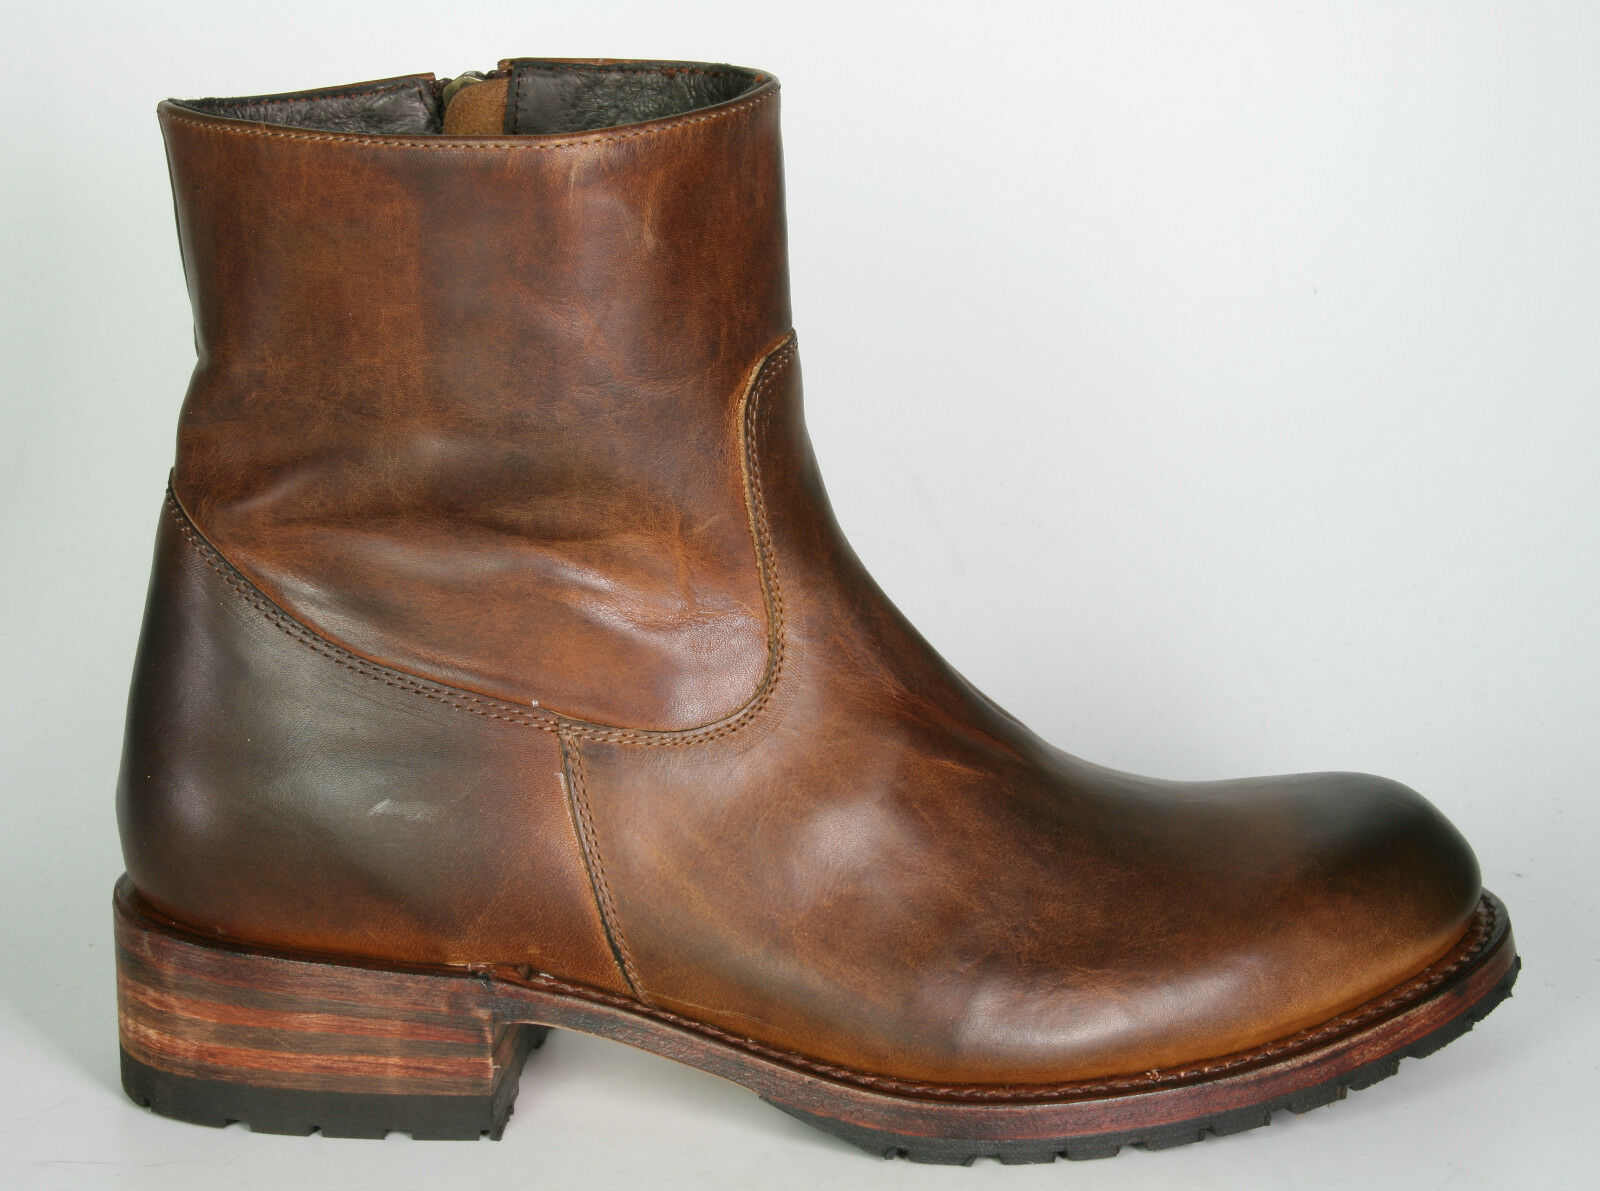 9491 sendra Boots Boots Boots Lighting Evolution Marron Cadre cousue Chaussures | Durable Service  25447c